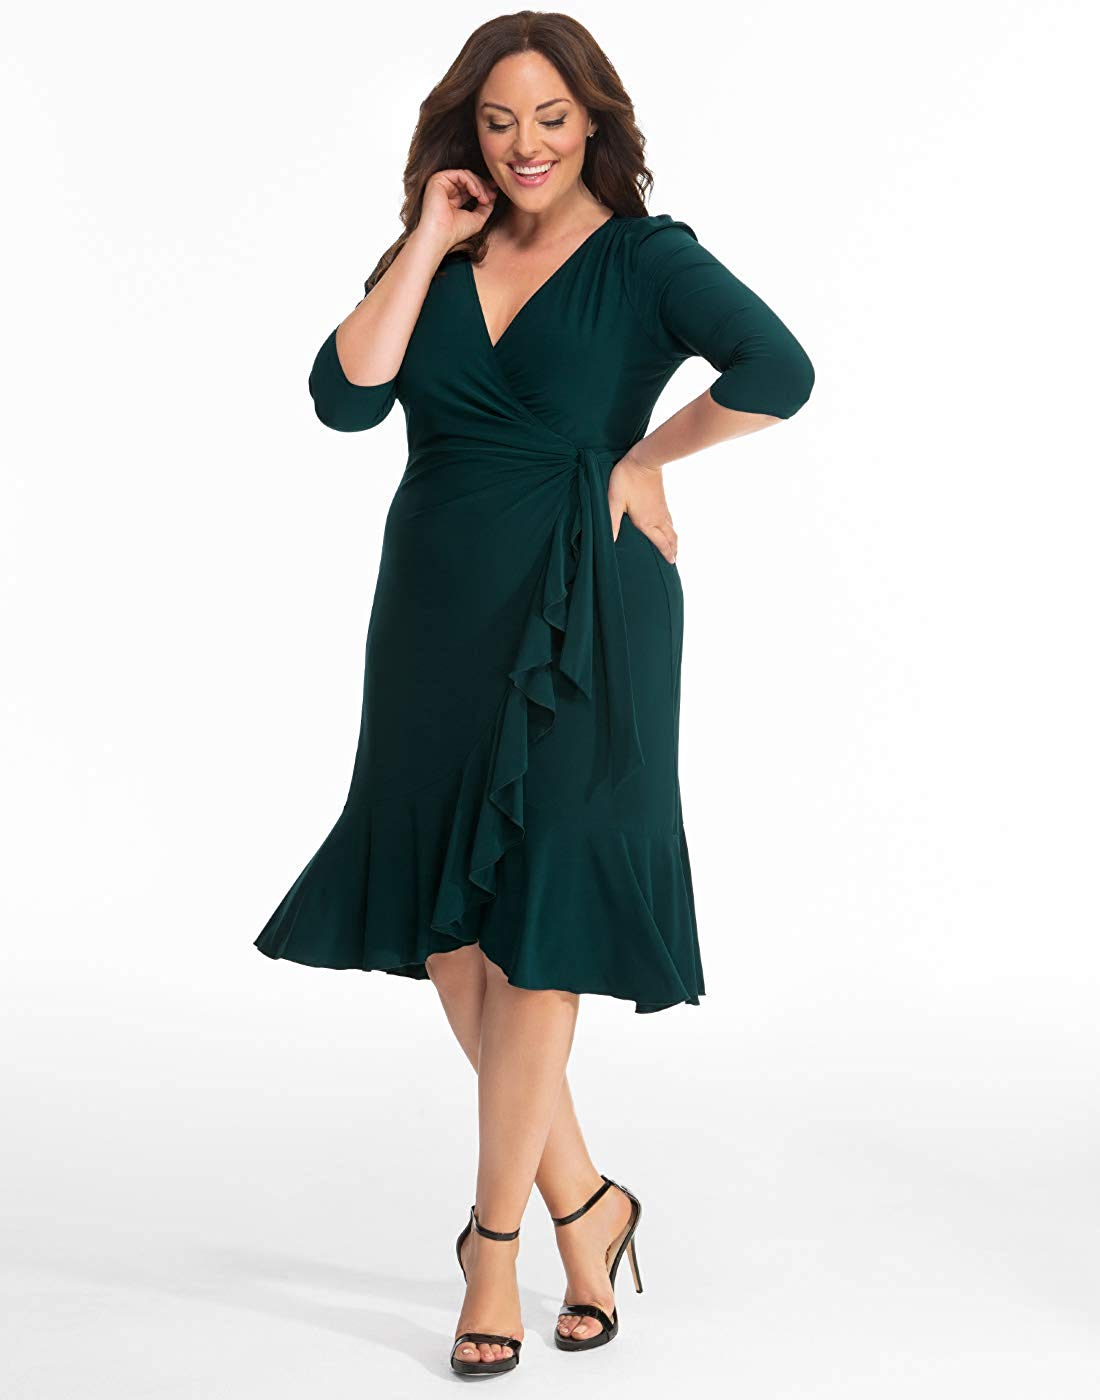 Sexy party dresses for curvy women